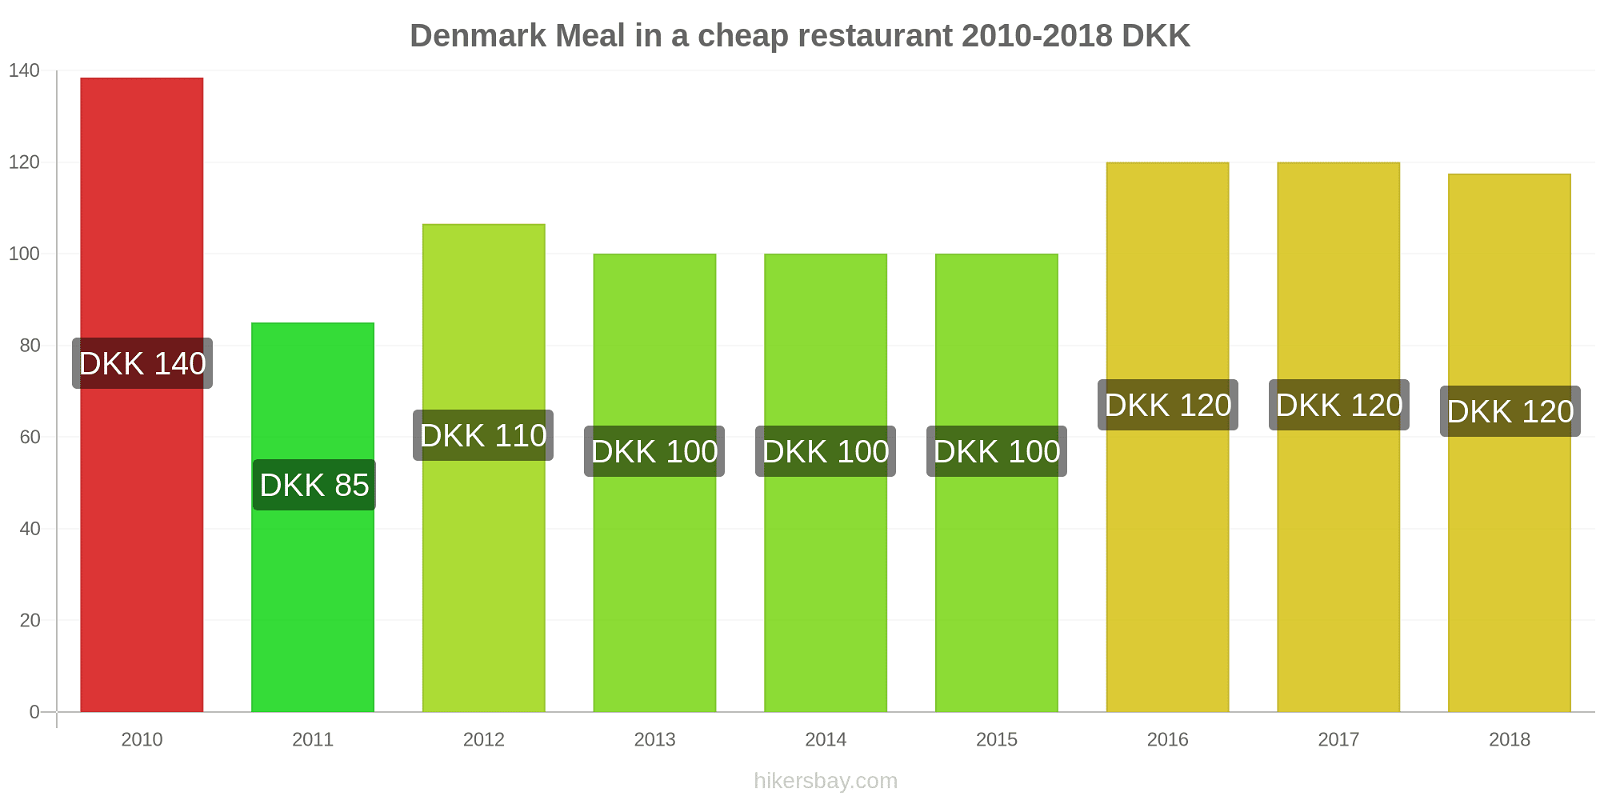 Denmark price changes Meal in a cheap restaurant hikersbay.com